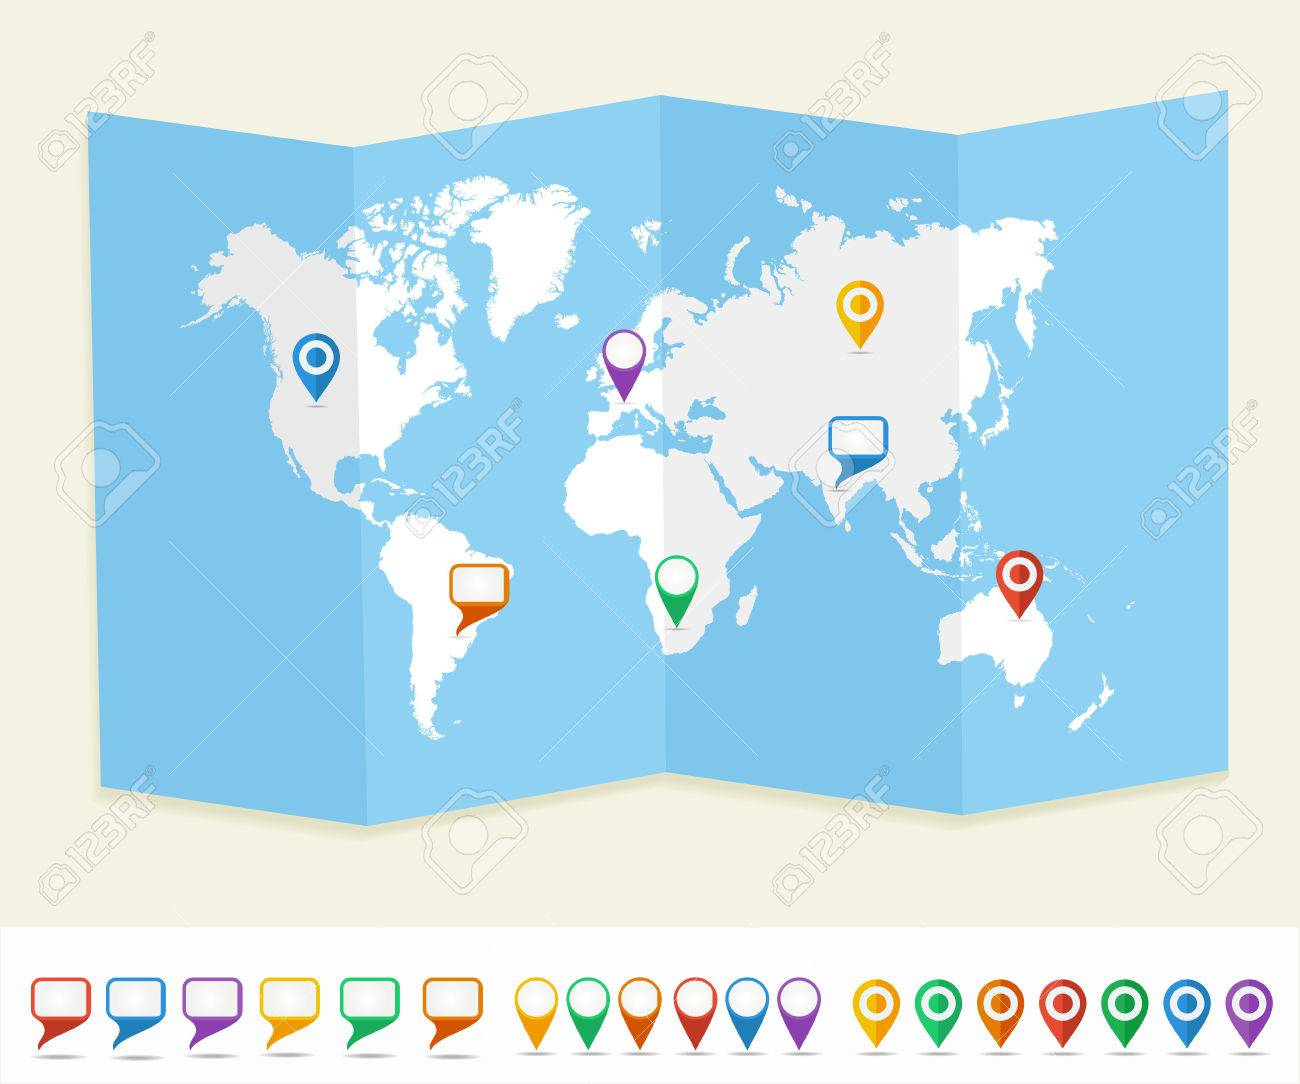 World Map Gps.World Map With Gps Location Pins And Social Media Speech Bubbles